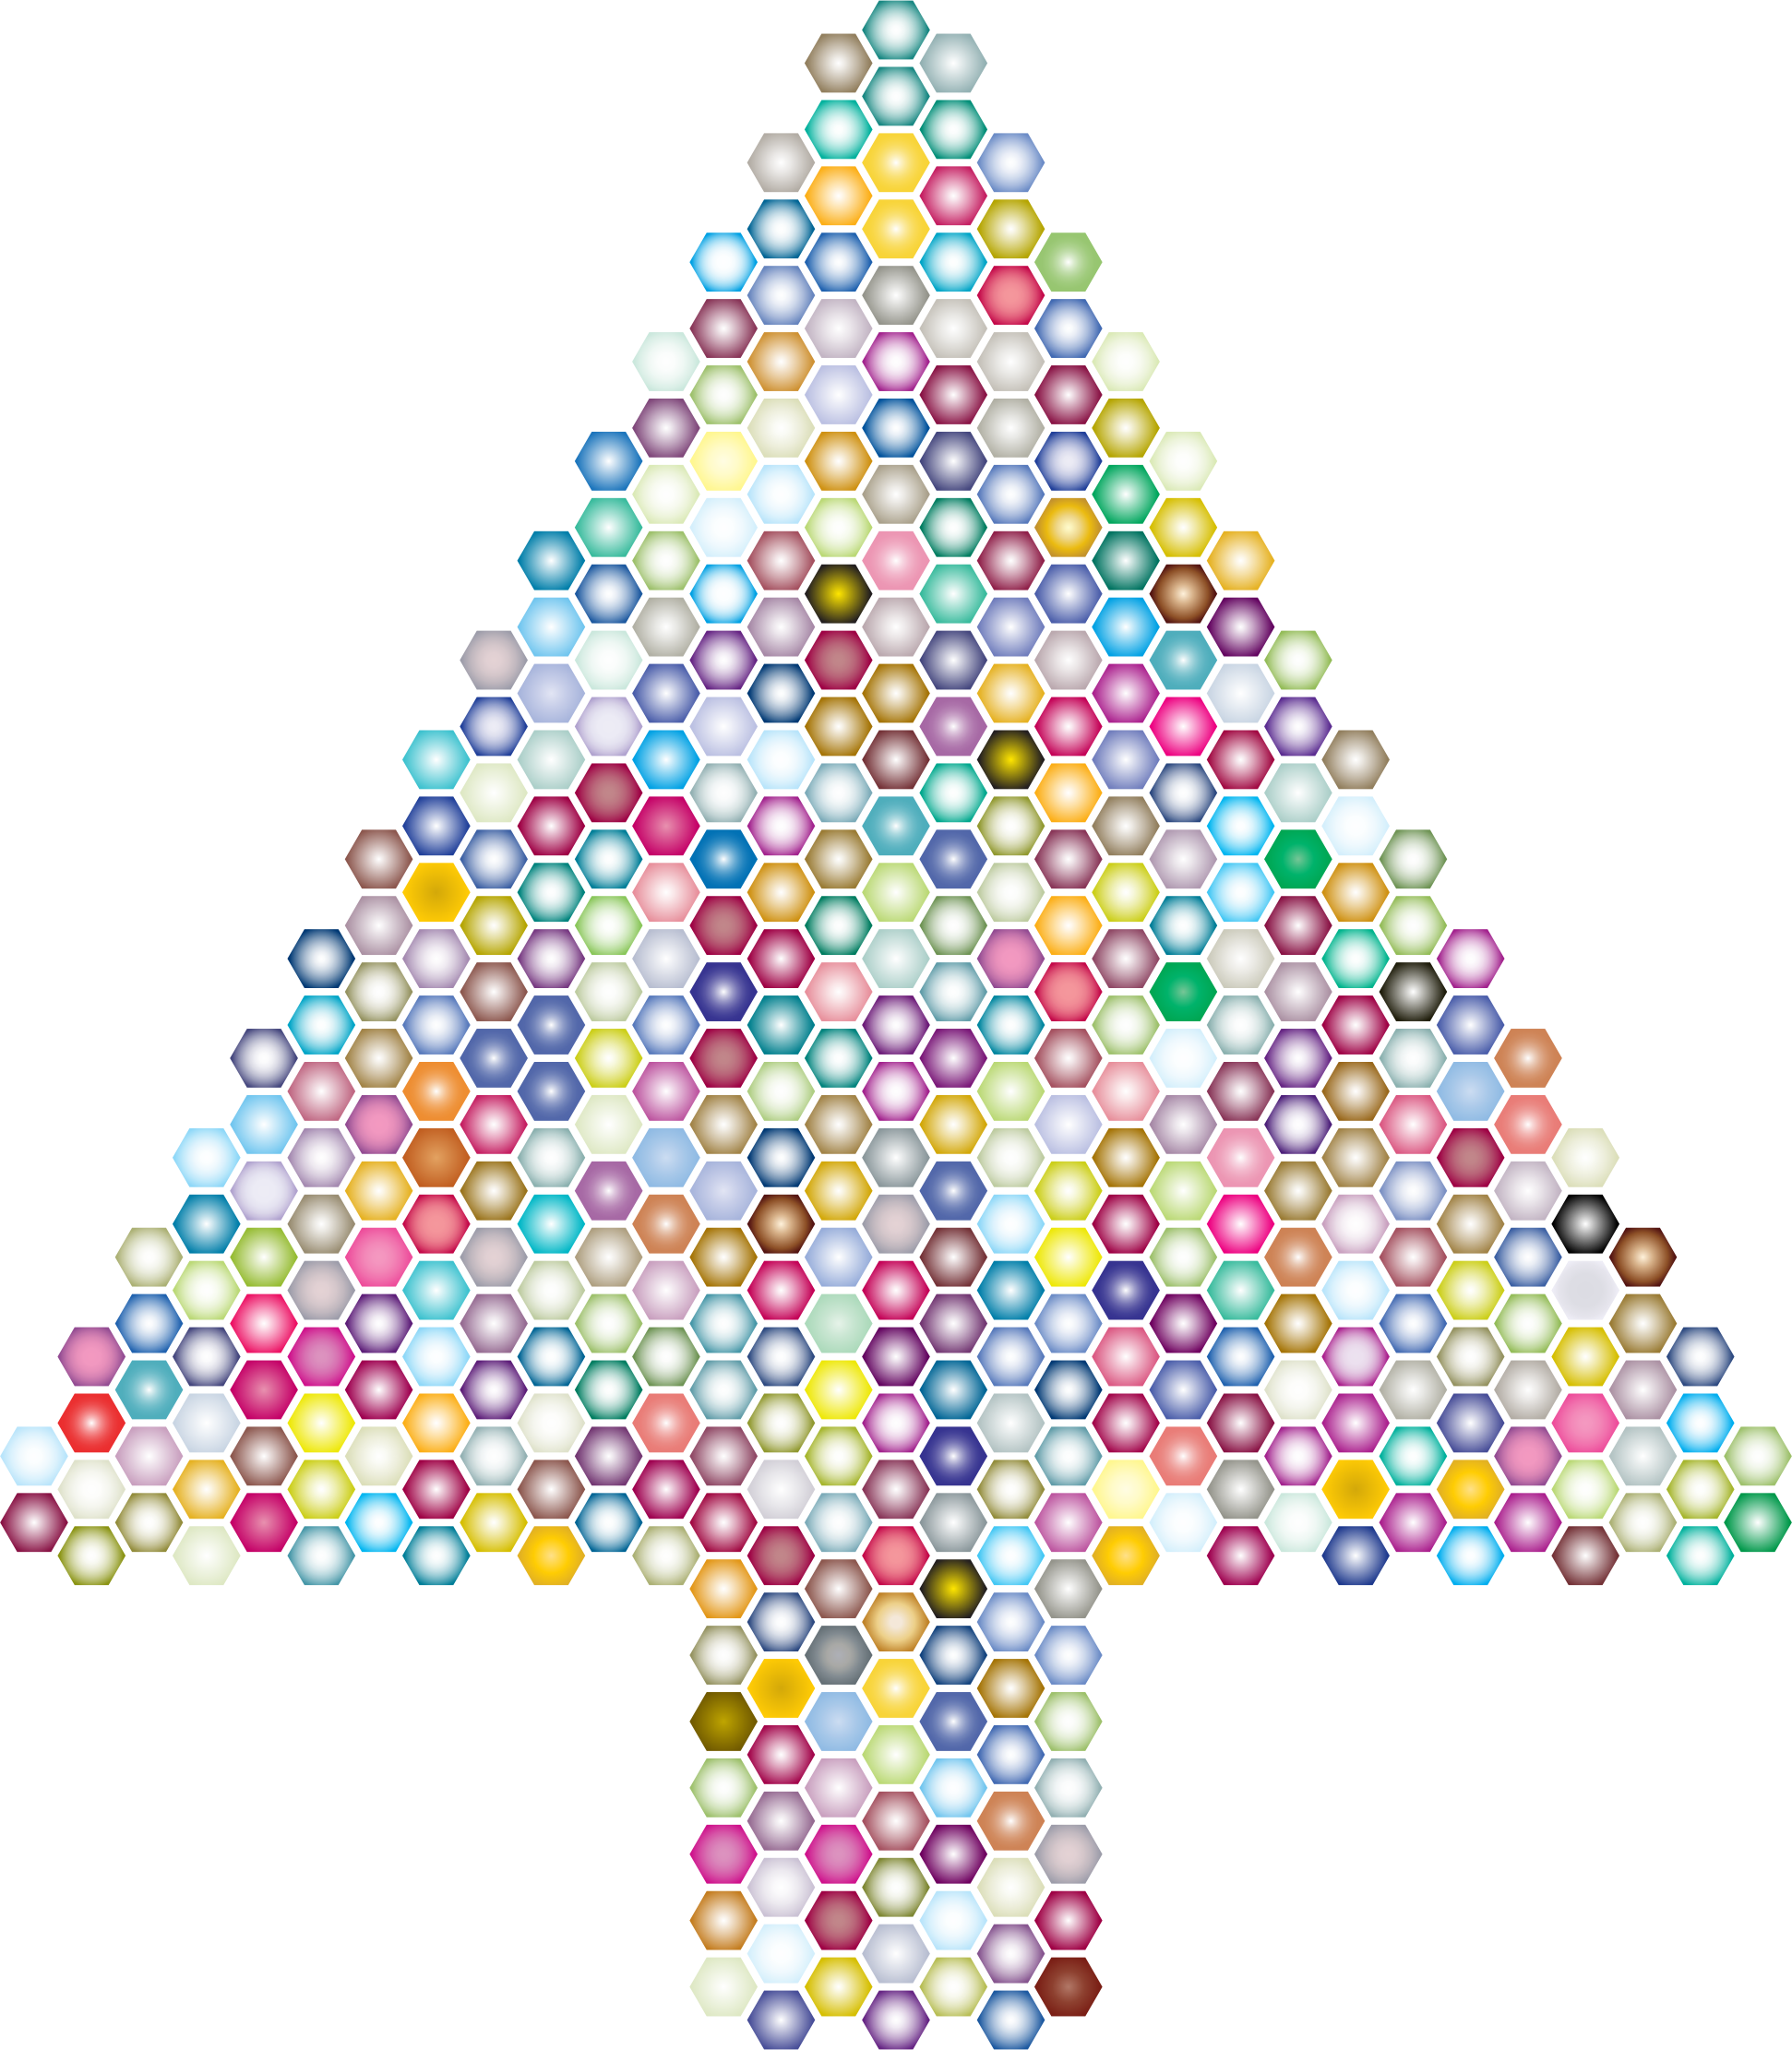 Prismatic Hexagonal Abstract Christmas Tree 3 by GDJ